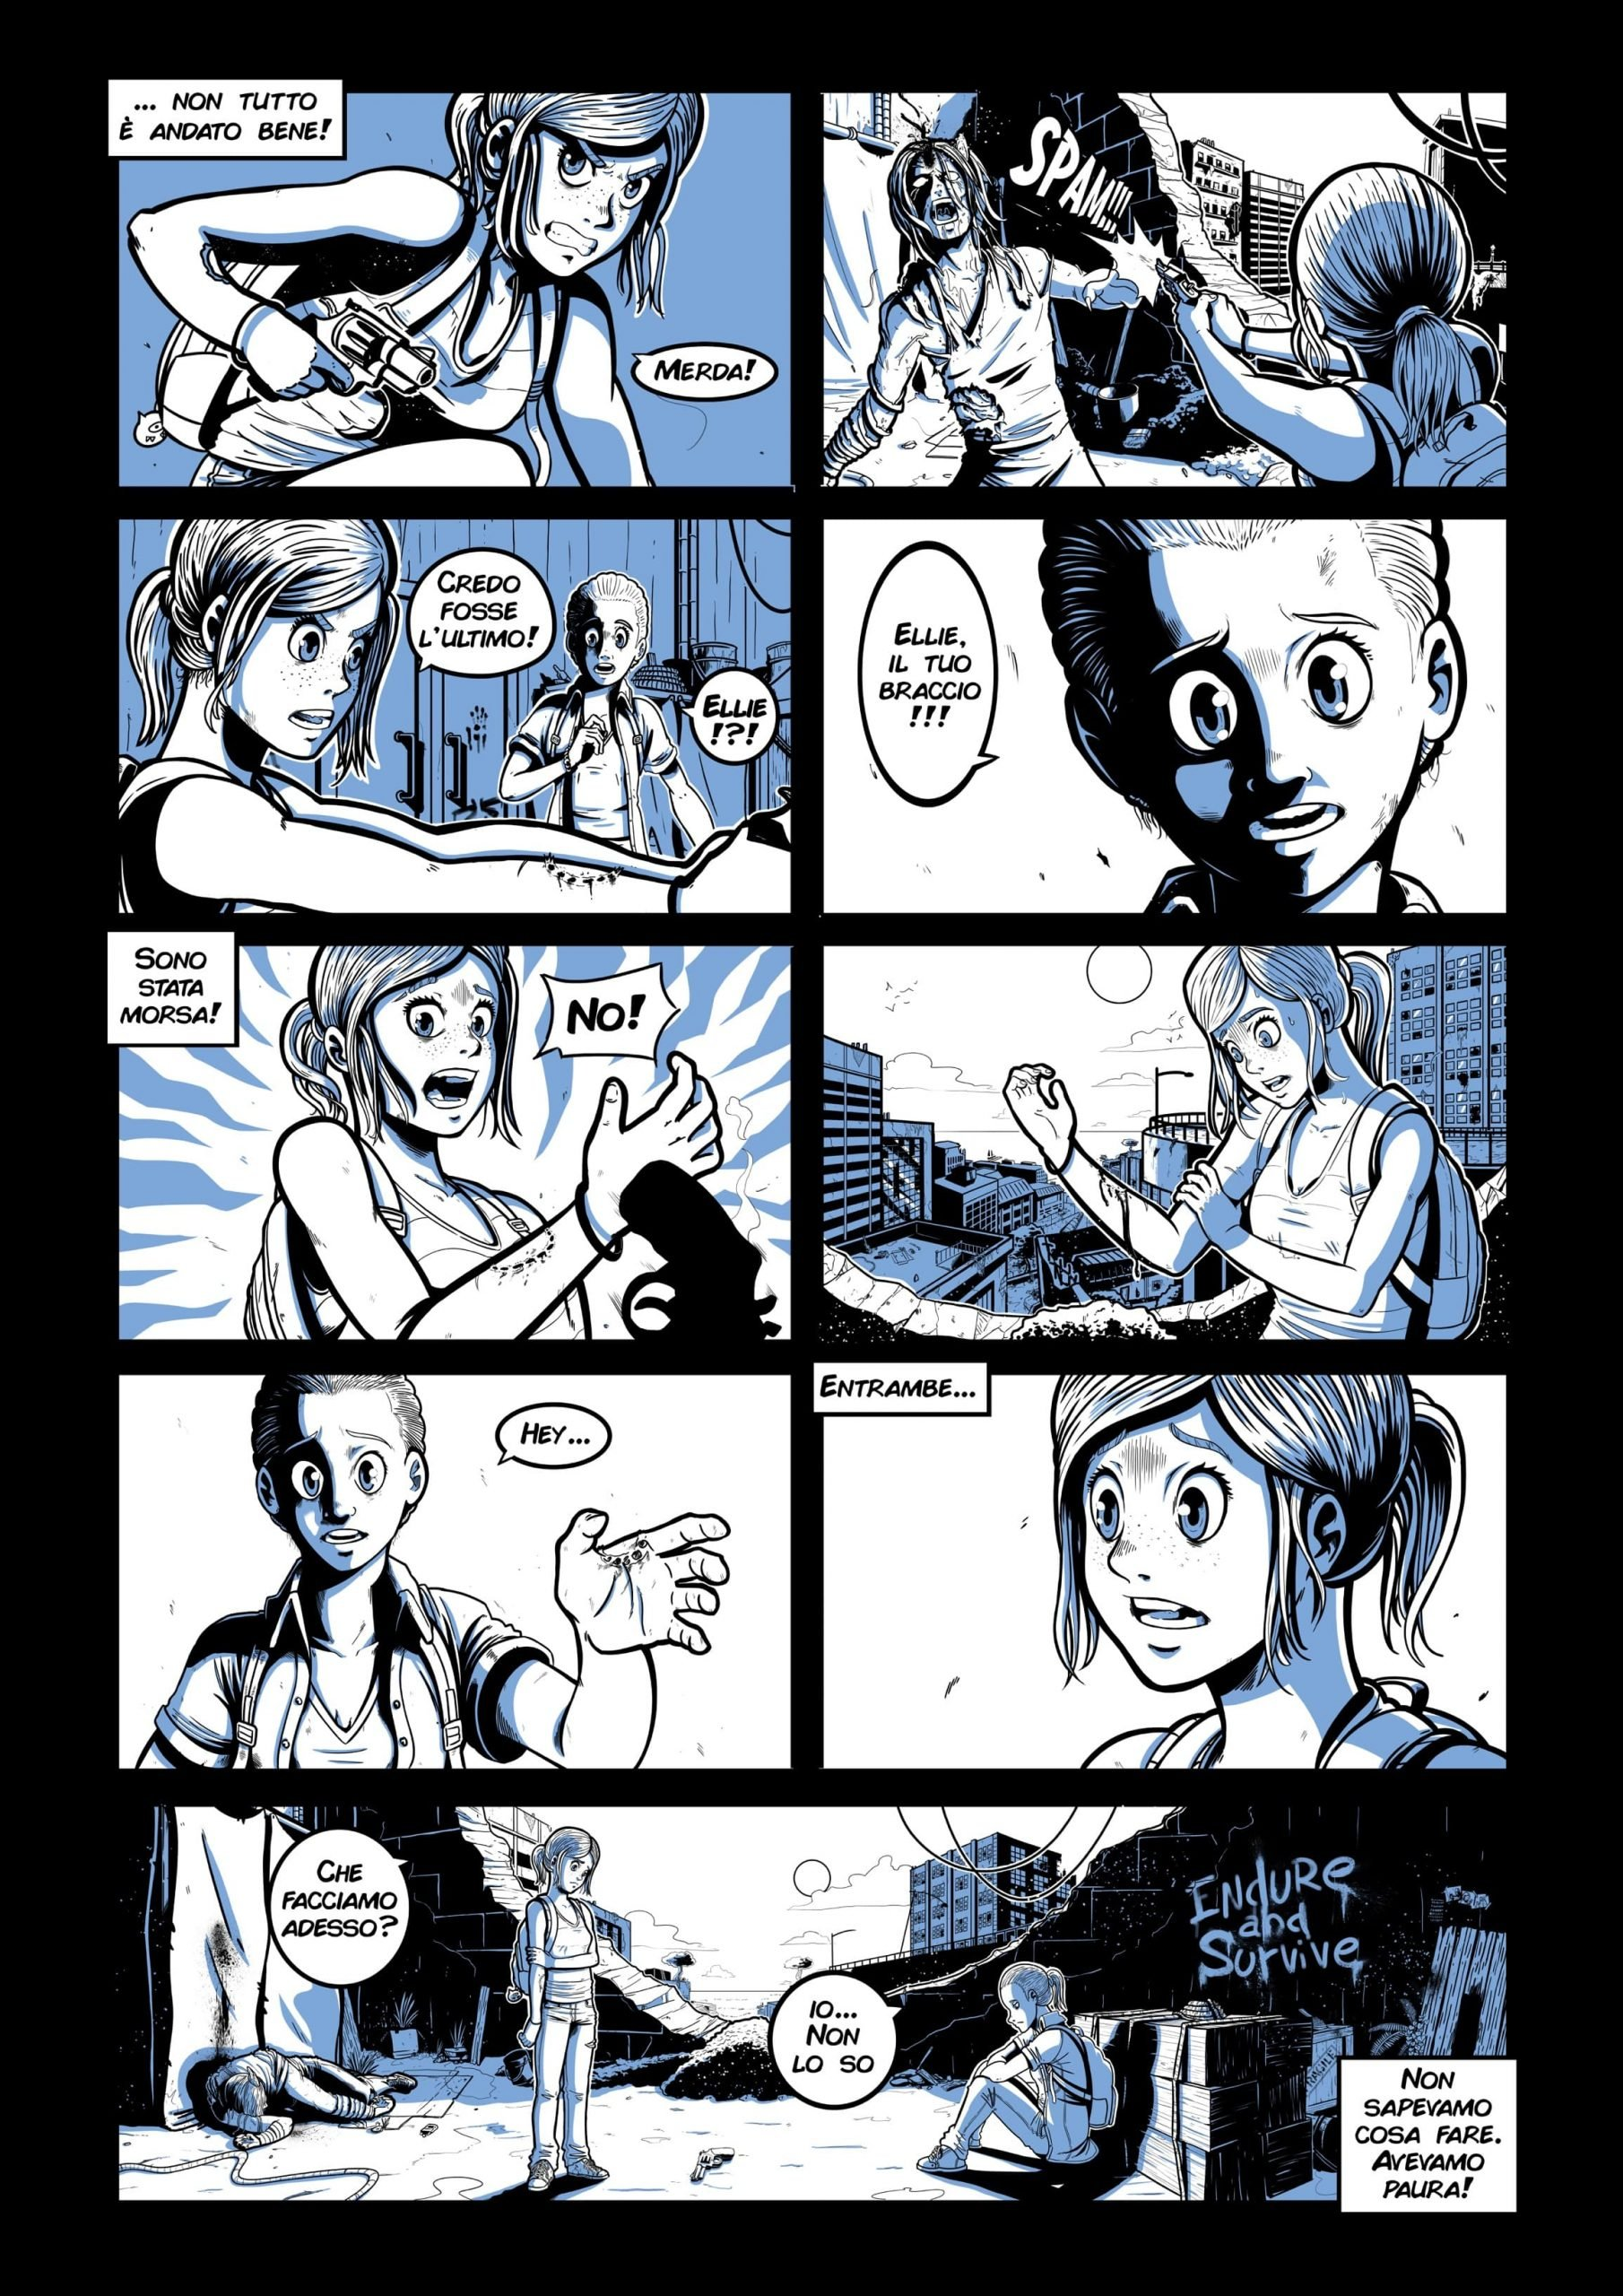 The Last of Us Fan-Made Comic